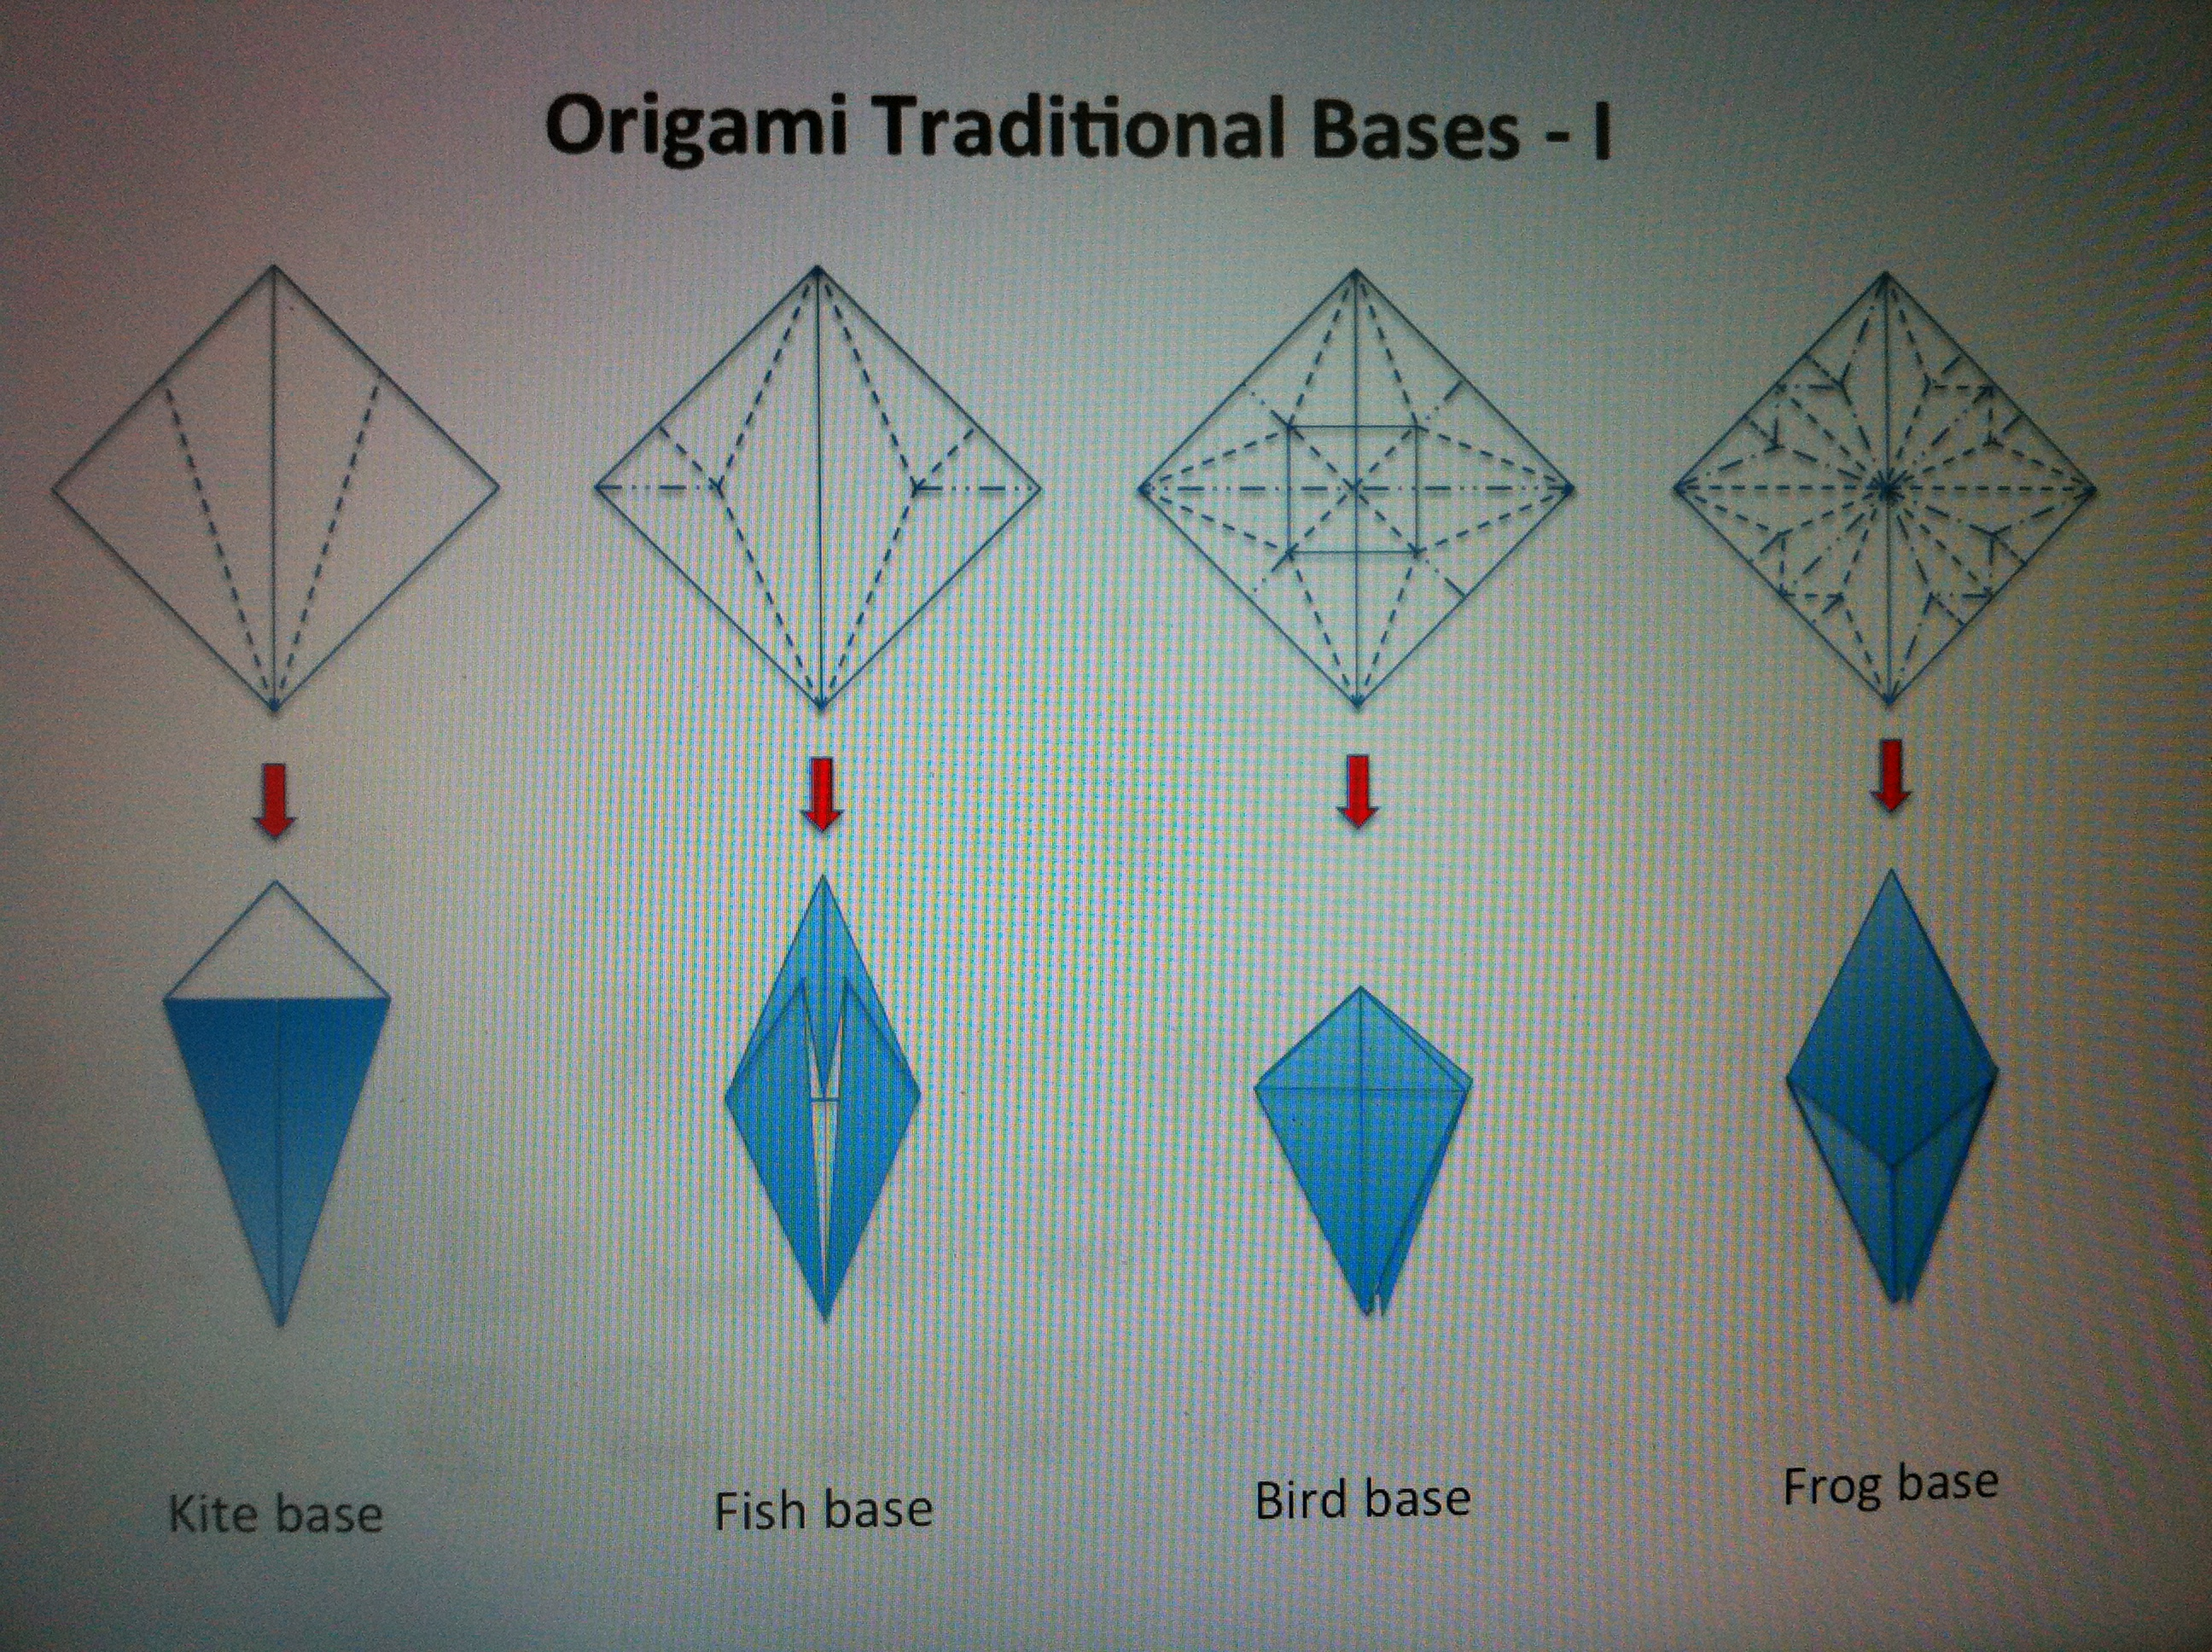 diagram of fold mountains formation 2002 chevy cavalier exhaust system basic origami folds and bases management